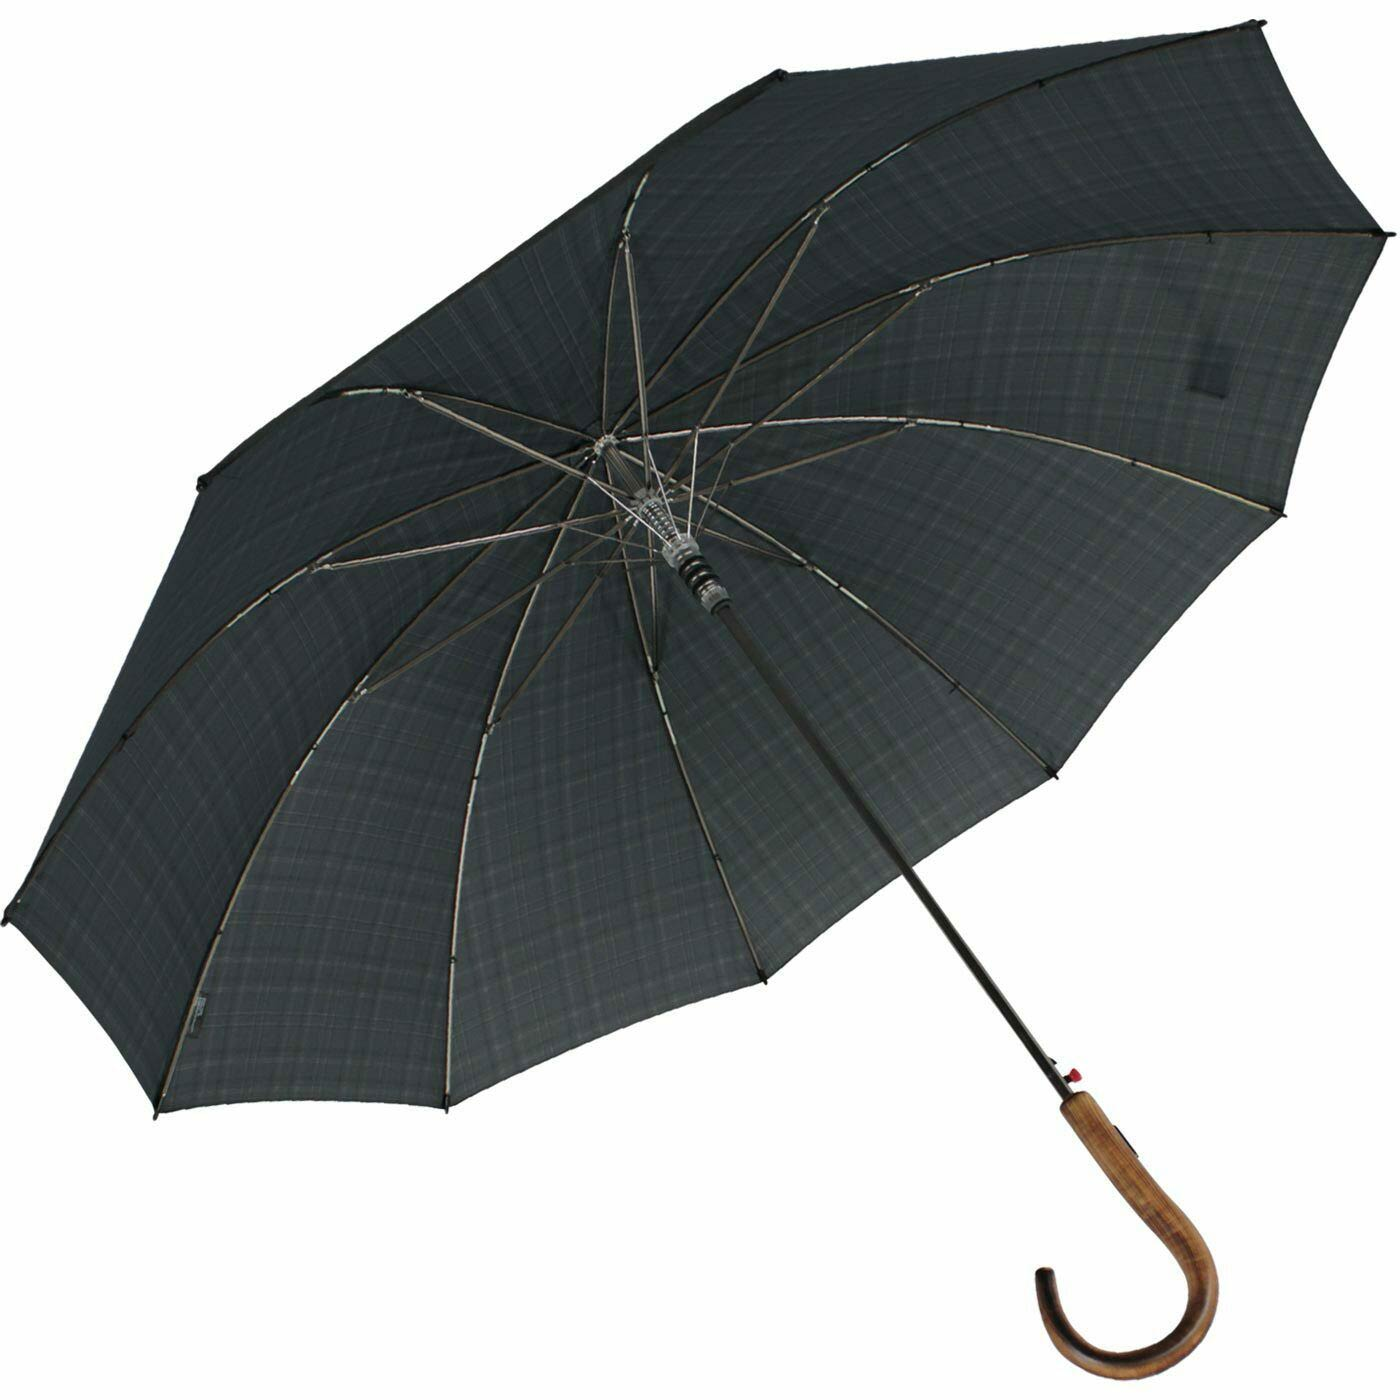 KNIRPS stick umbrella SL 923 Check | the design gift shop